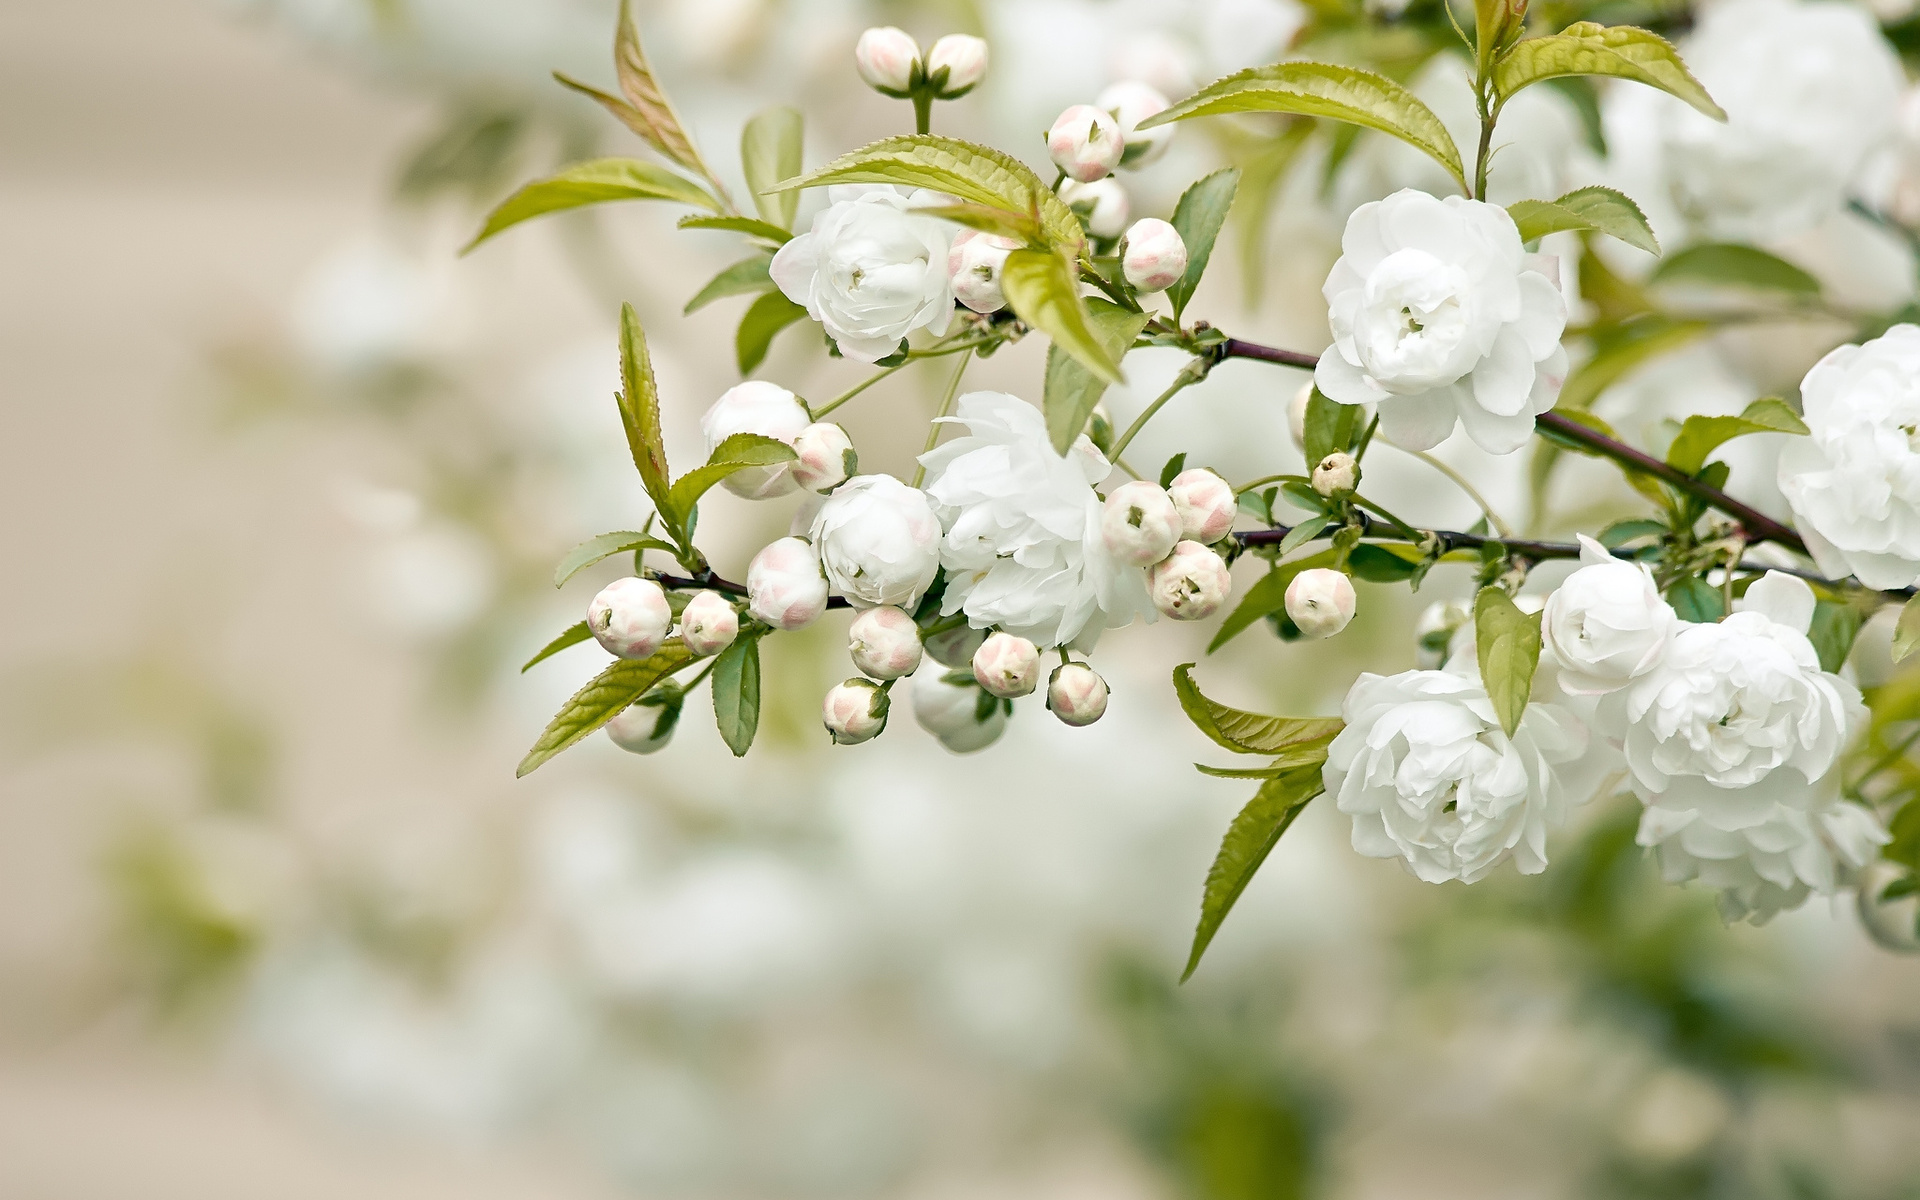 White Flowers Blooming Pic Source